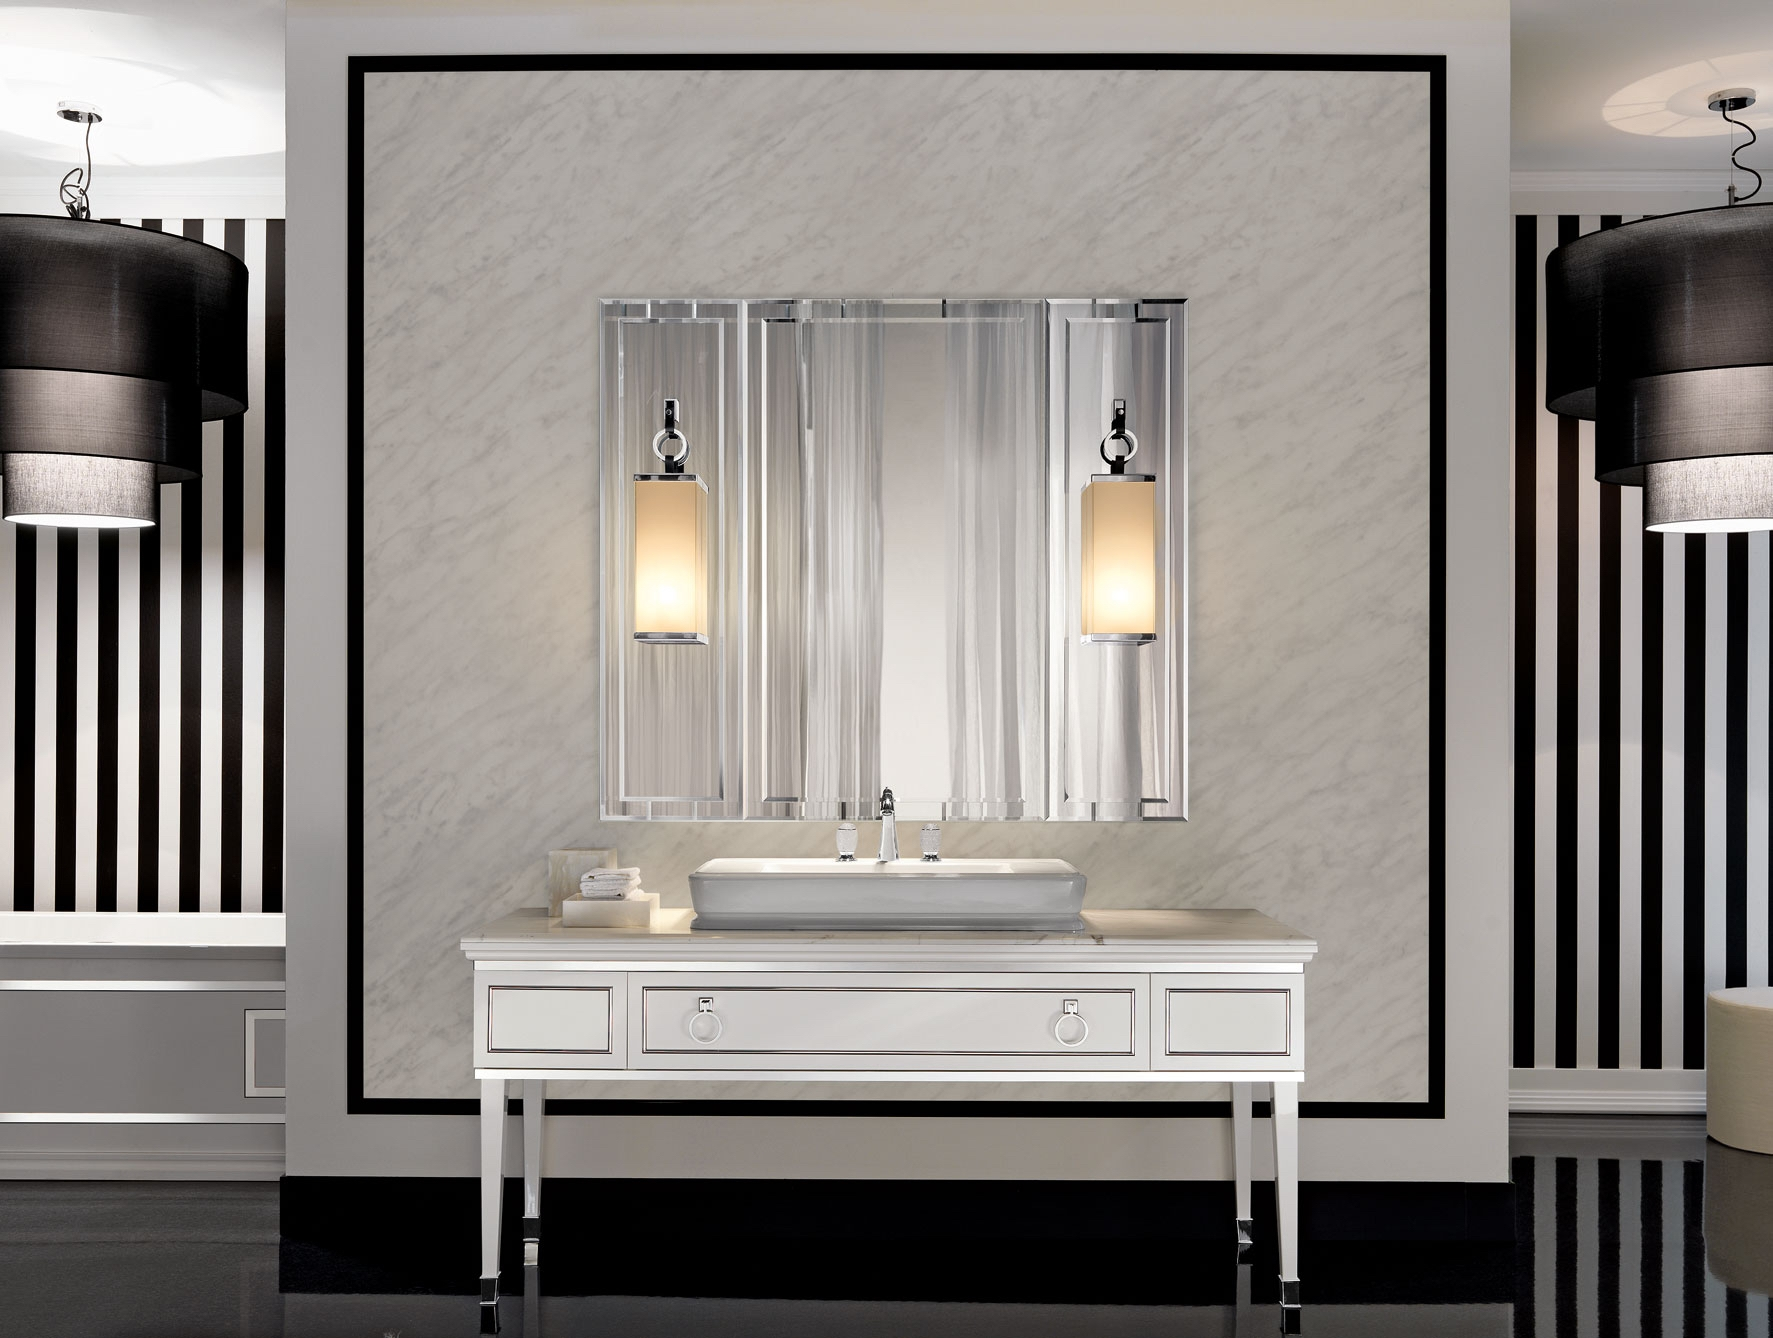 Bathroom Mirror And Sconce Setsquare bathroom vanity wall mirror amazing home interior mirror